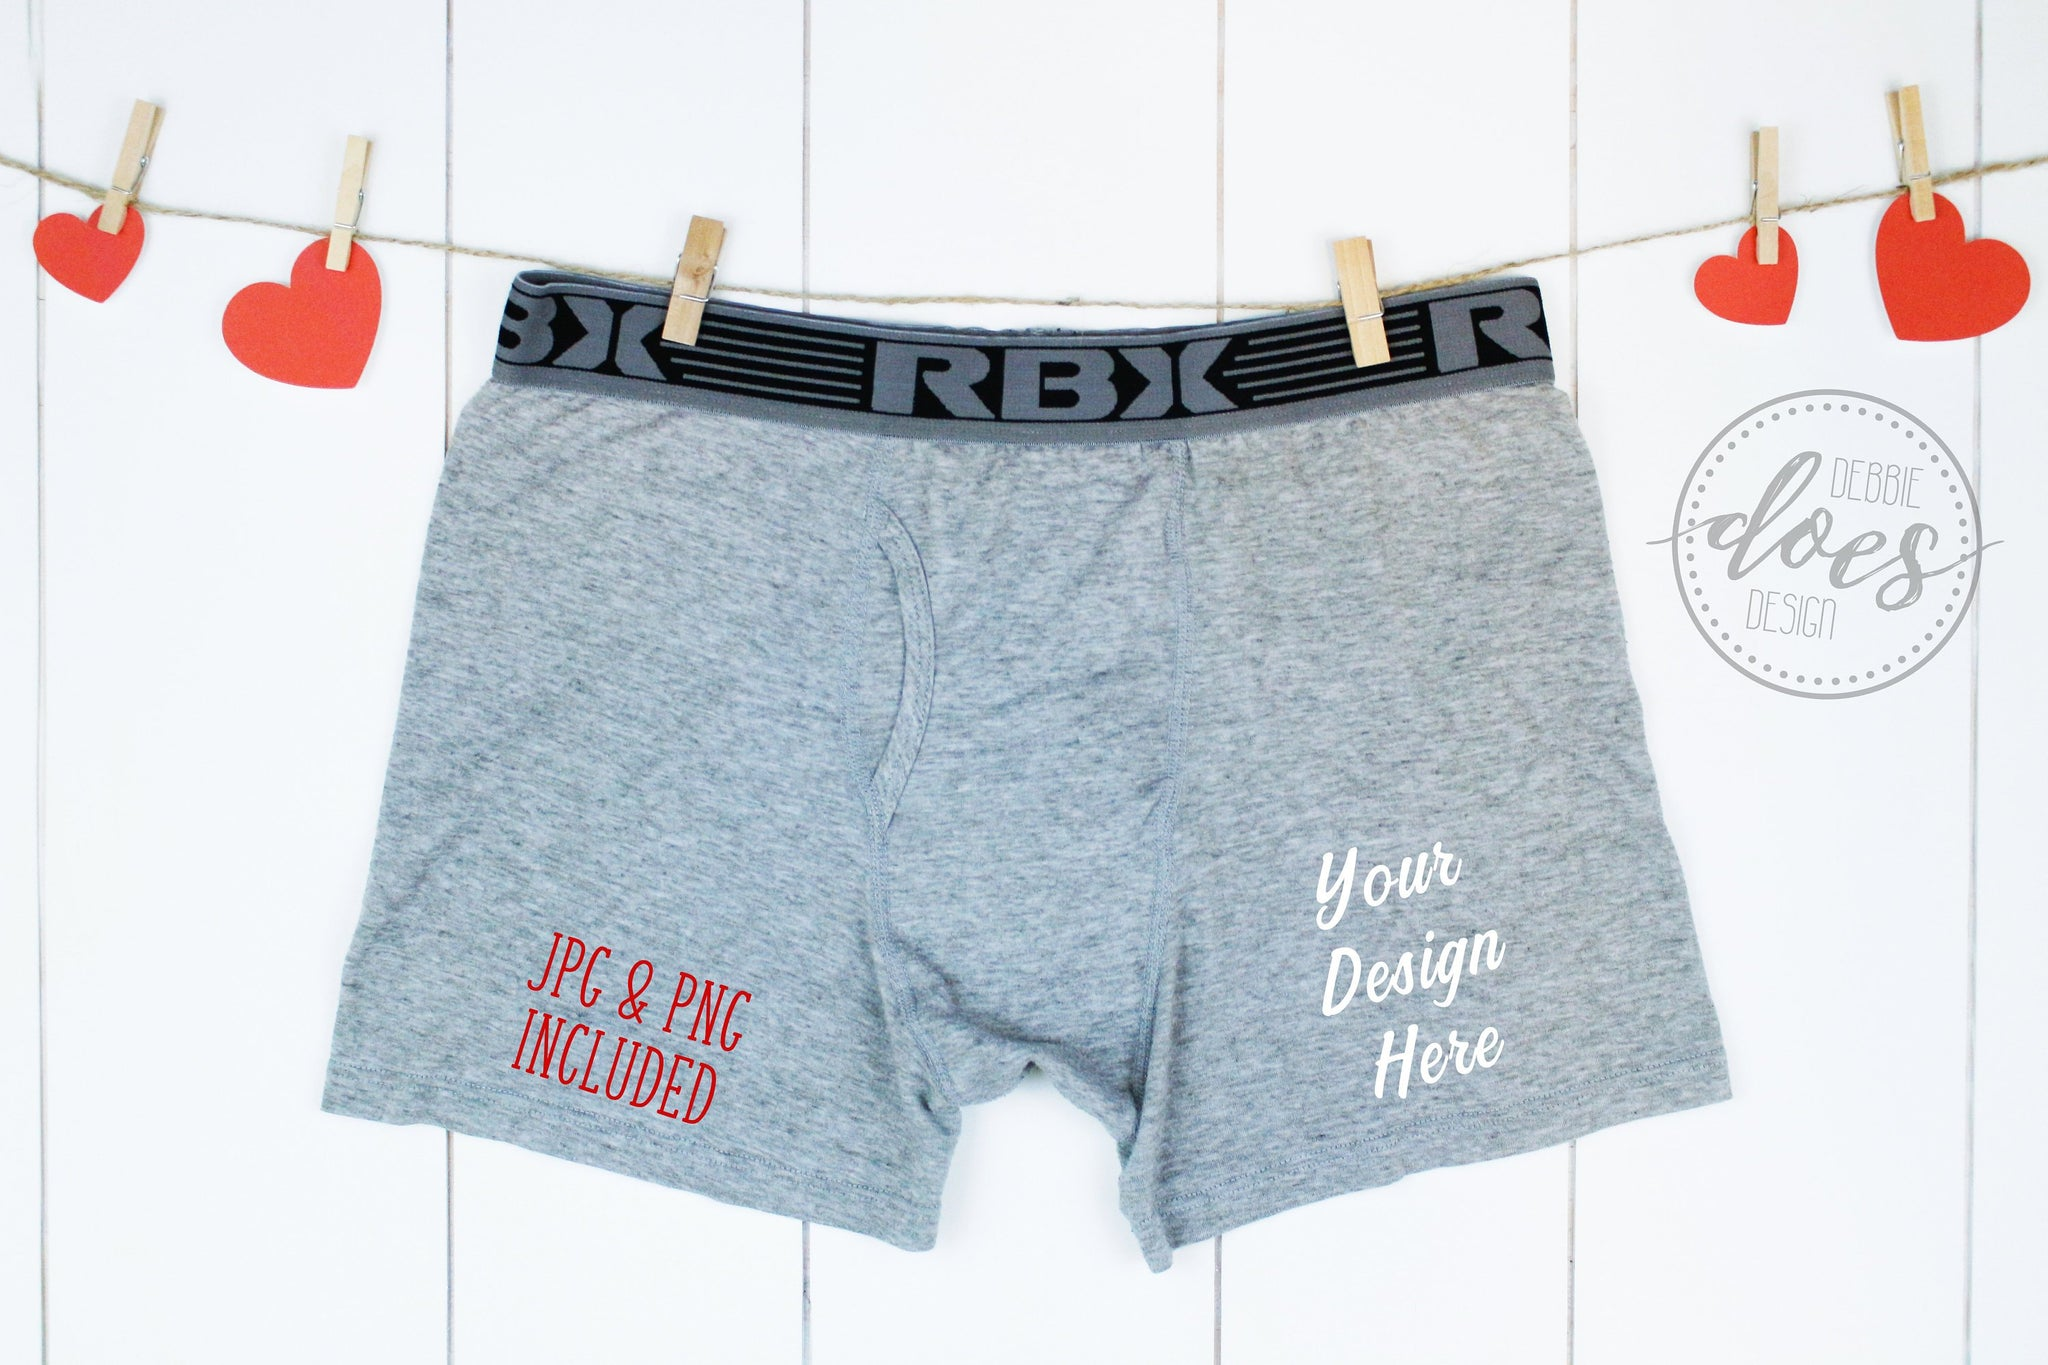 Grey Boxer Briefs Mockup on Clothesline with Hearts | Valentines | Blank Mockup Photo Download